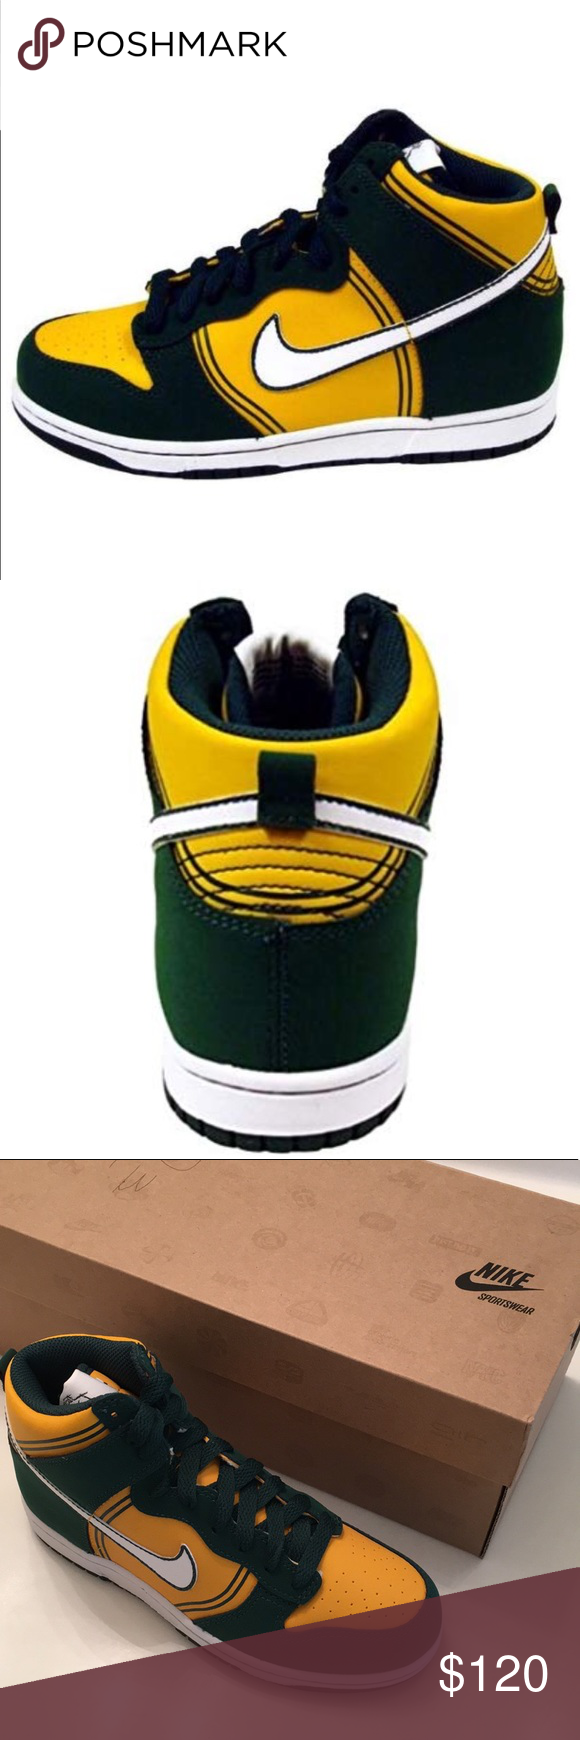 brand new bd573 4c688 Nike Kids  Dunk Hi Casual Jamaican Shoes (Rare) The Nike Dunk High Kids   Casual Basketball Shoes mark the style of a legend and your own individual  ...